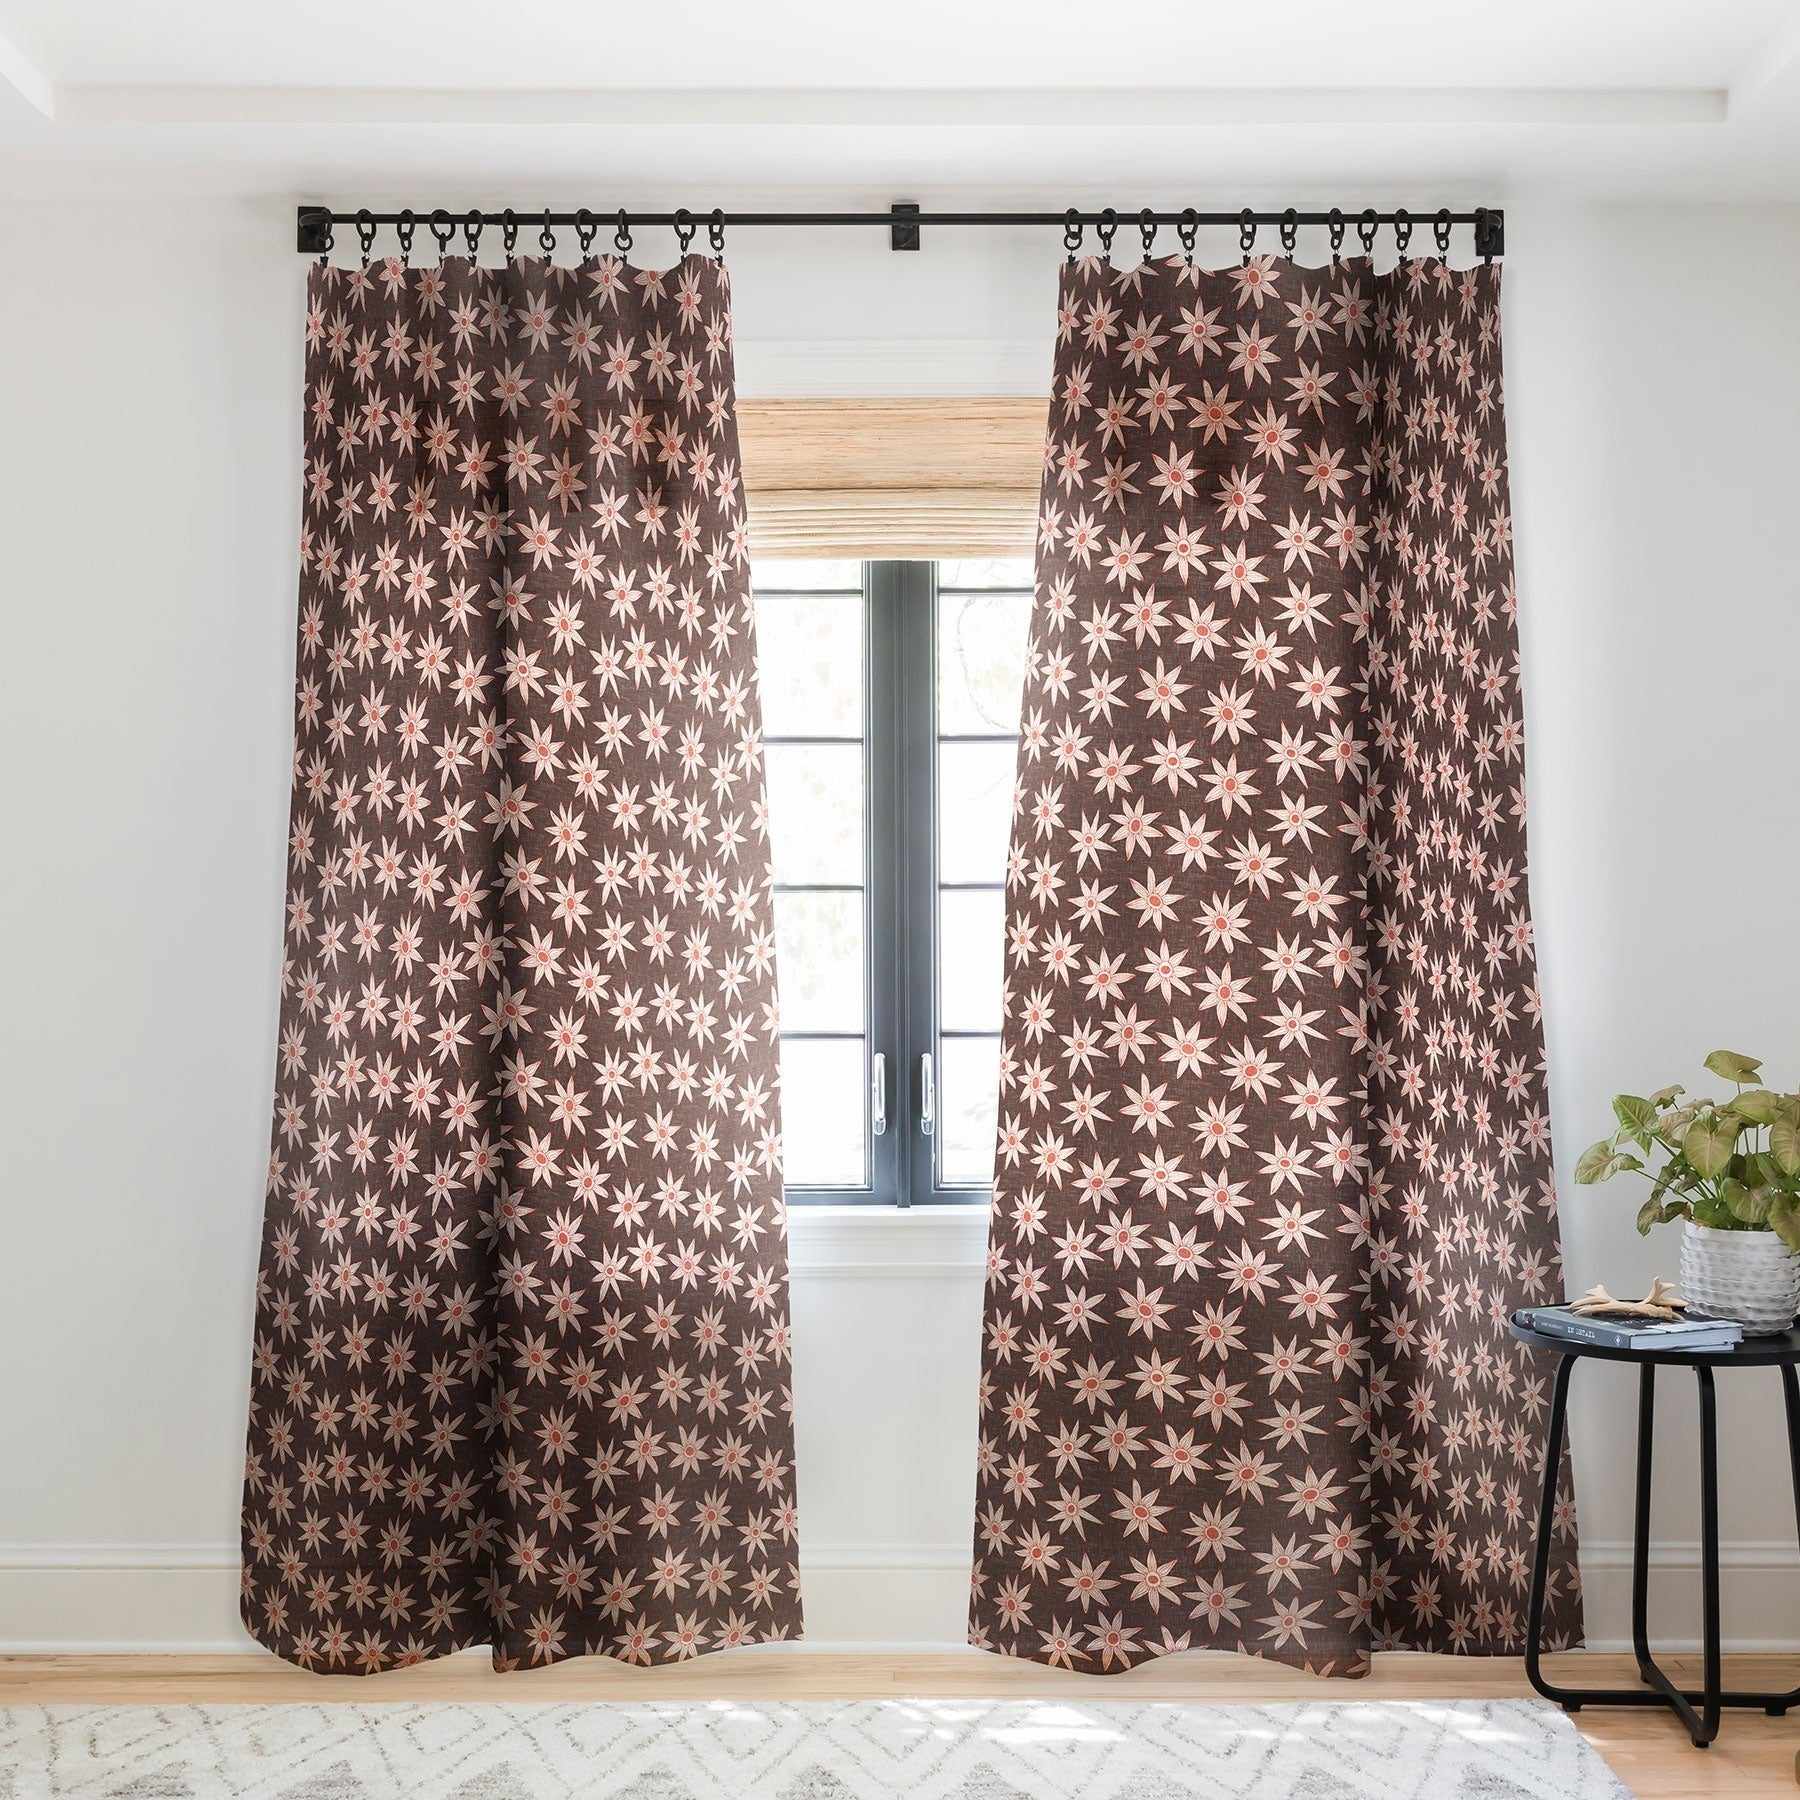 Sharon Turner Sema Brown Single Panel Sheer Curtain 50 X 84 On Sale Overstock 22042286